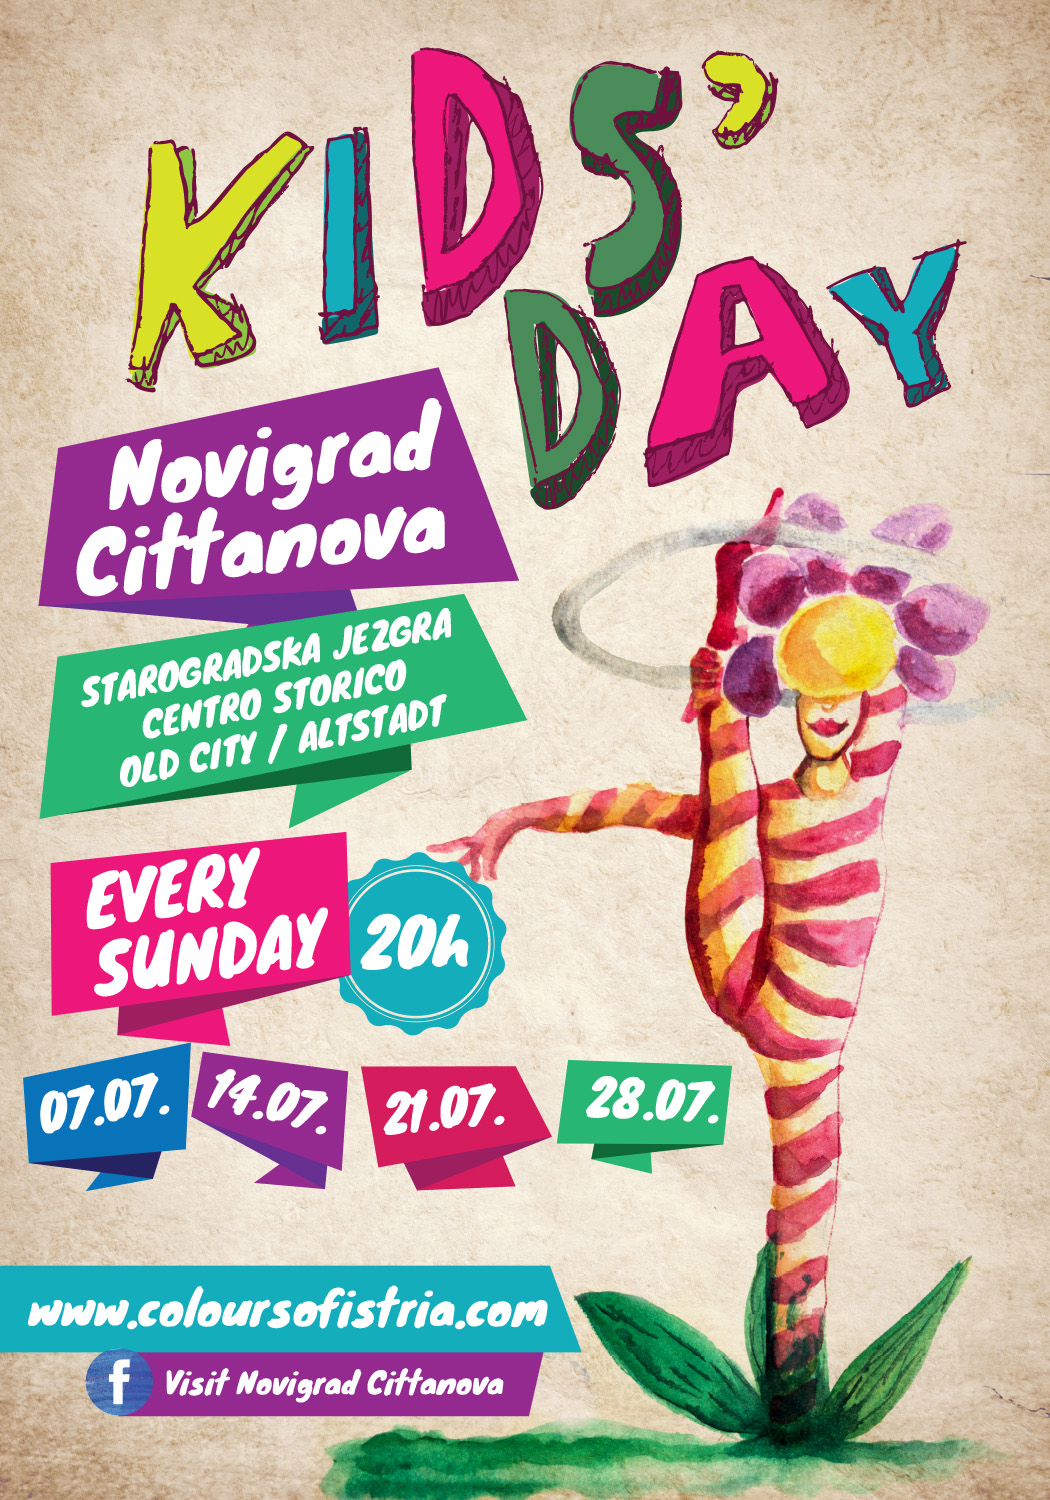 http://www.novigrad.hr/kids_day